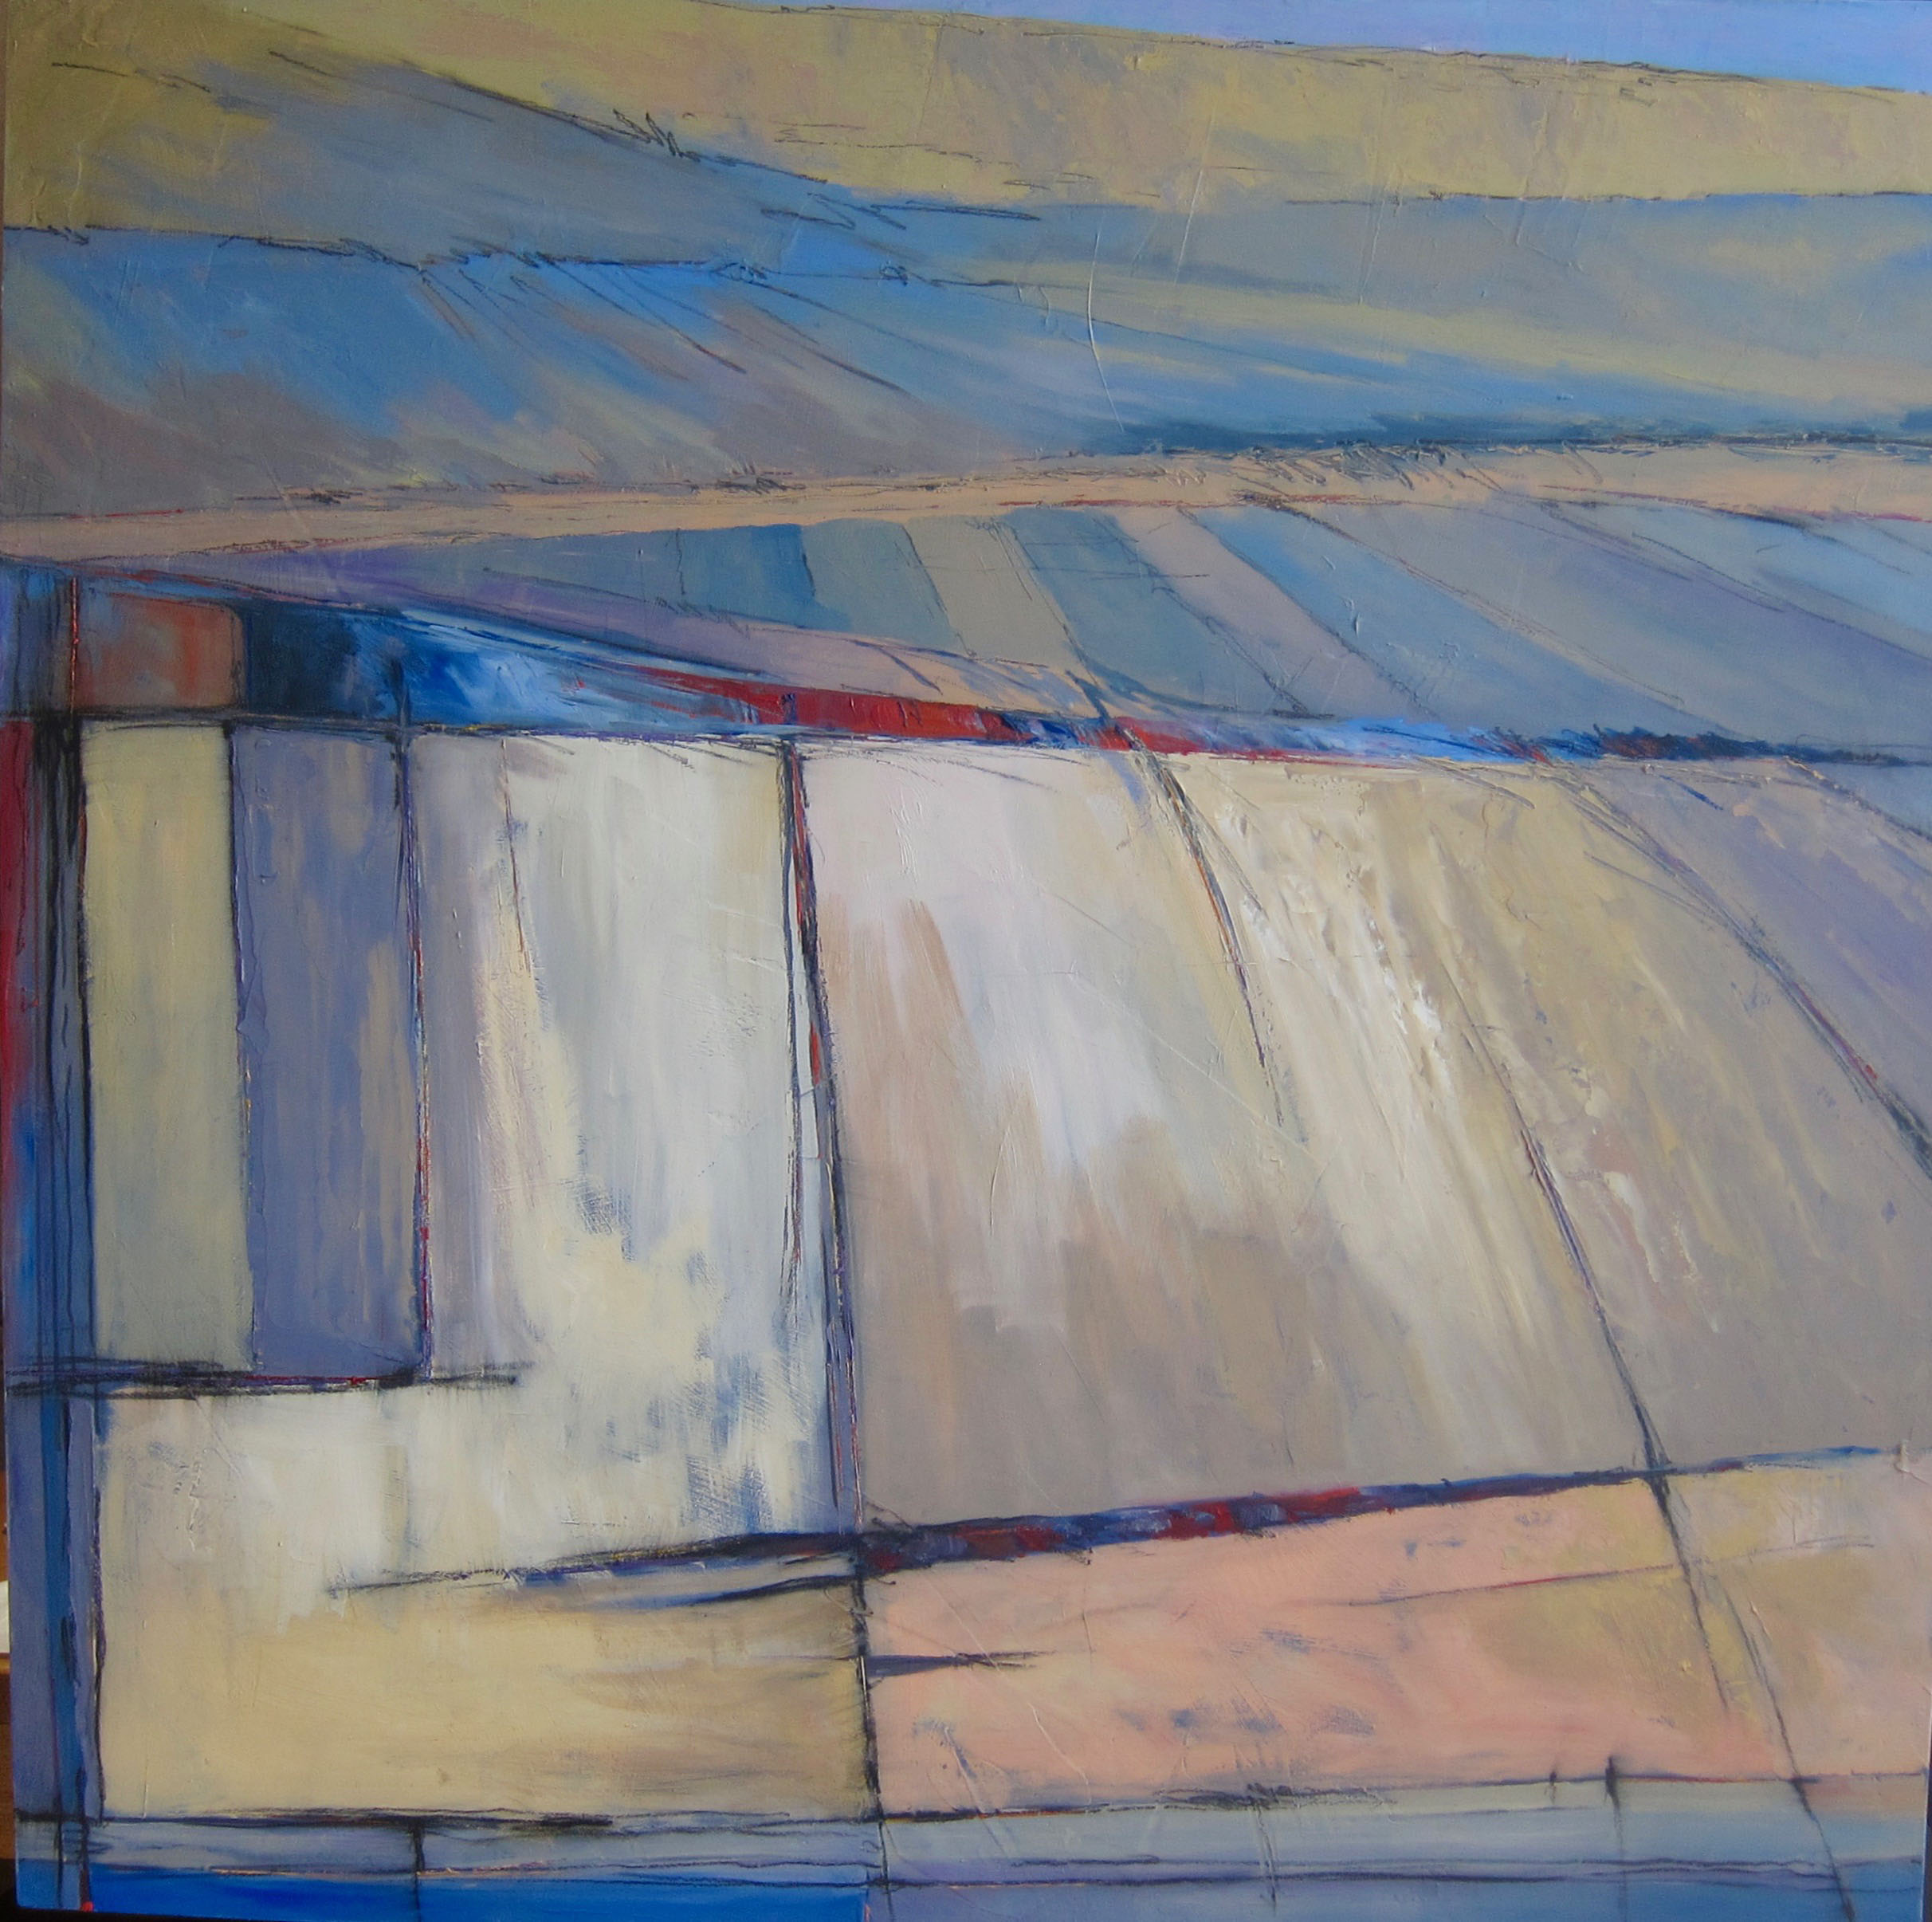 Patchwork Terrain#Oil on panel#36 x 36 inches#SOLD